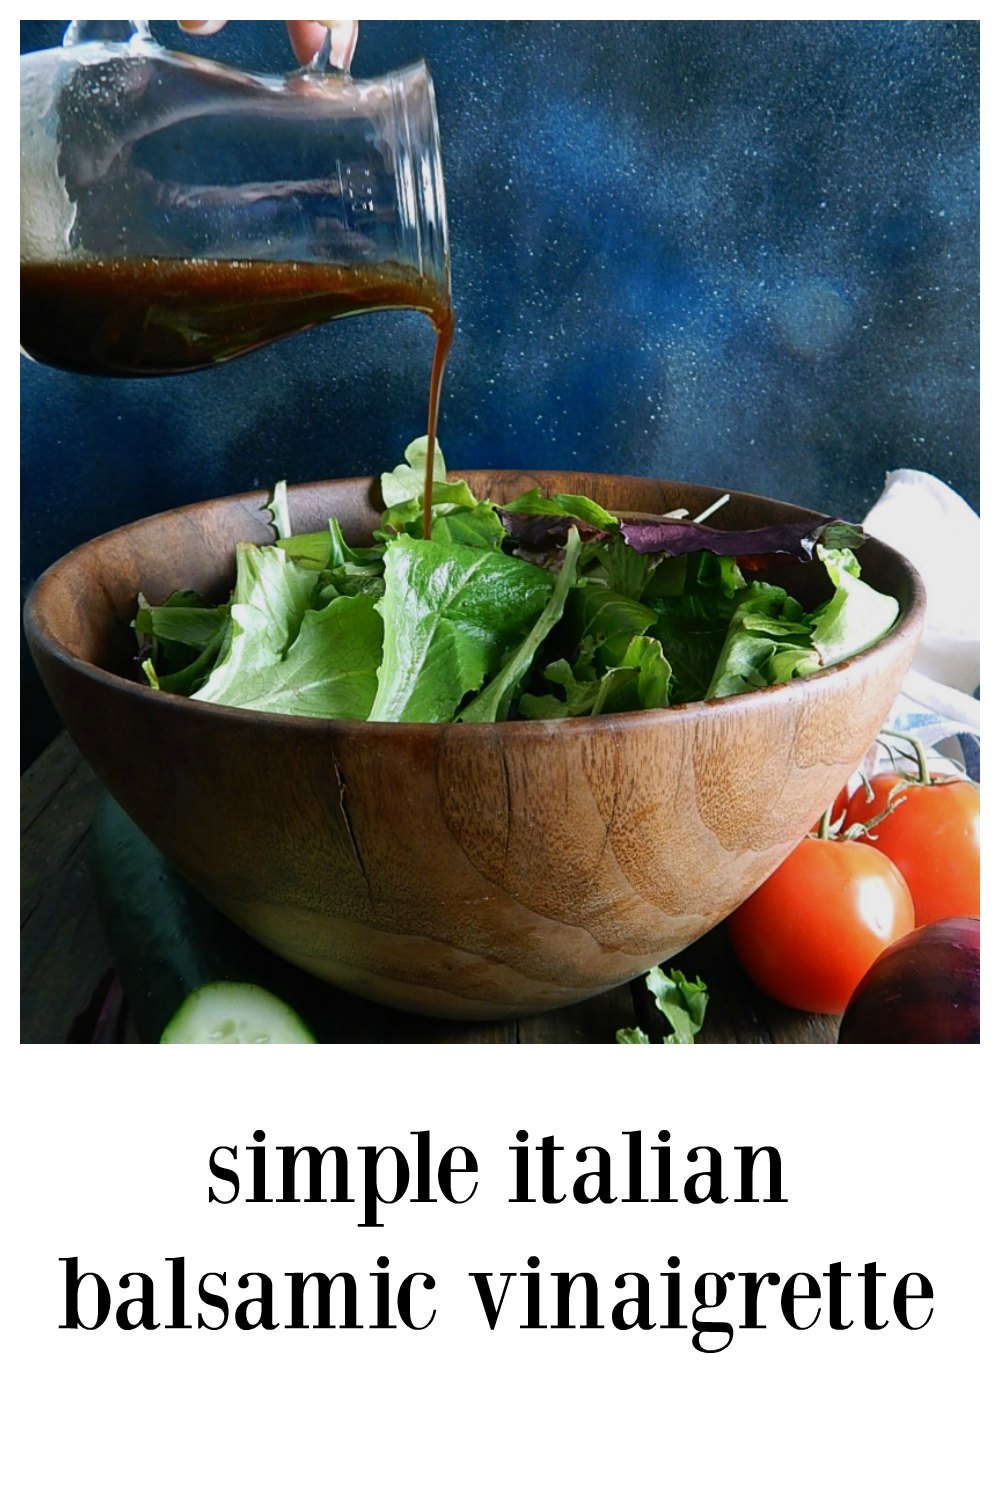 Simple Italian Balsamic Vinaigrette is a classic! Just a decent Balsamic and olive oil, a touch of honey and a few shavings of shallot or onion. It's pure, and literally takes two shakes to make it!! #BalsamicVinaigrette #HomemadeBalsamicDressing #ClassicBalsamicDressing #HomemadeSaladDressing